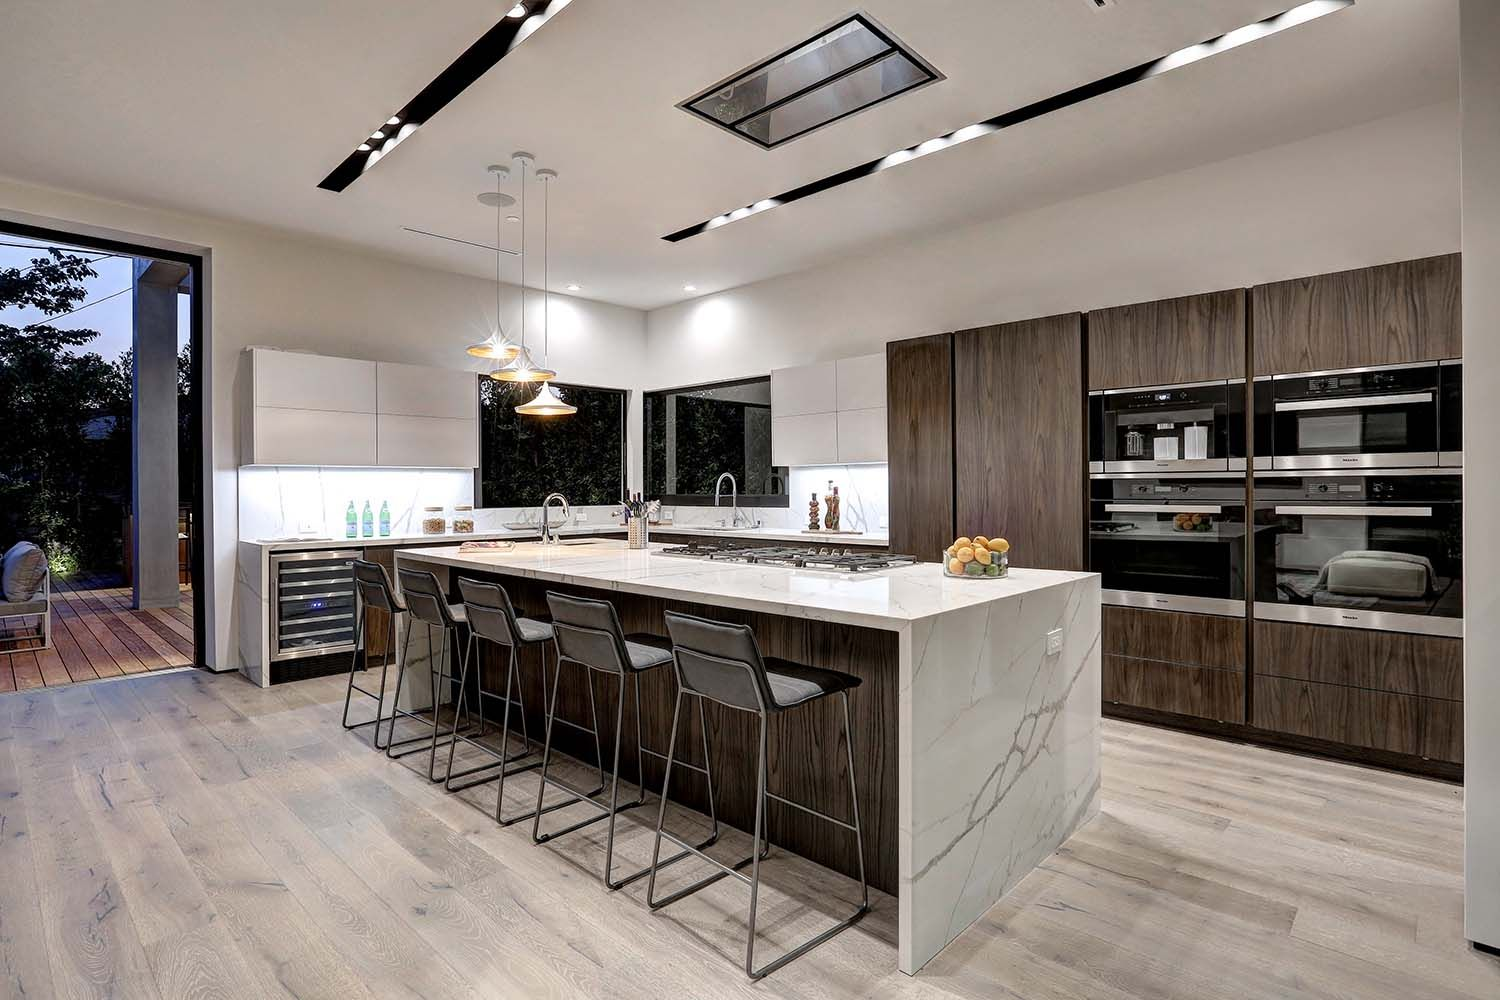 Phenomenal Modern Home With Indoor Outdoor Living In Los Angeles Contemporary Kitchen Modern Kitchen Modern Kitchen Design